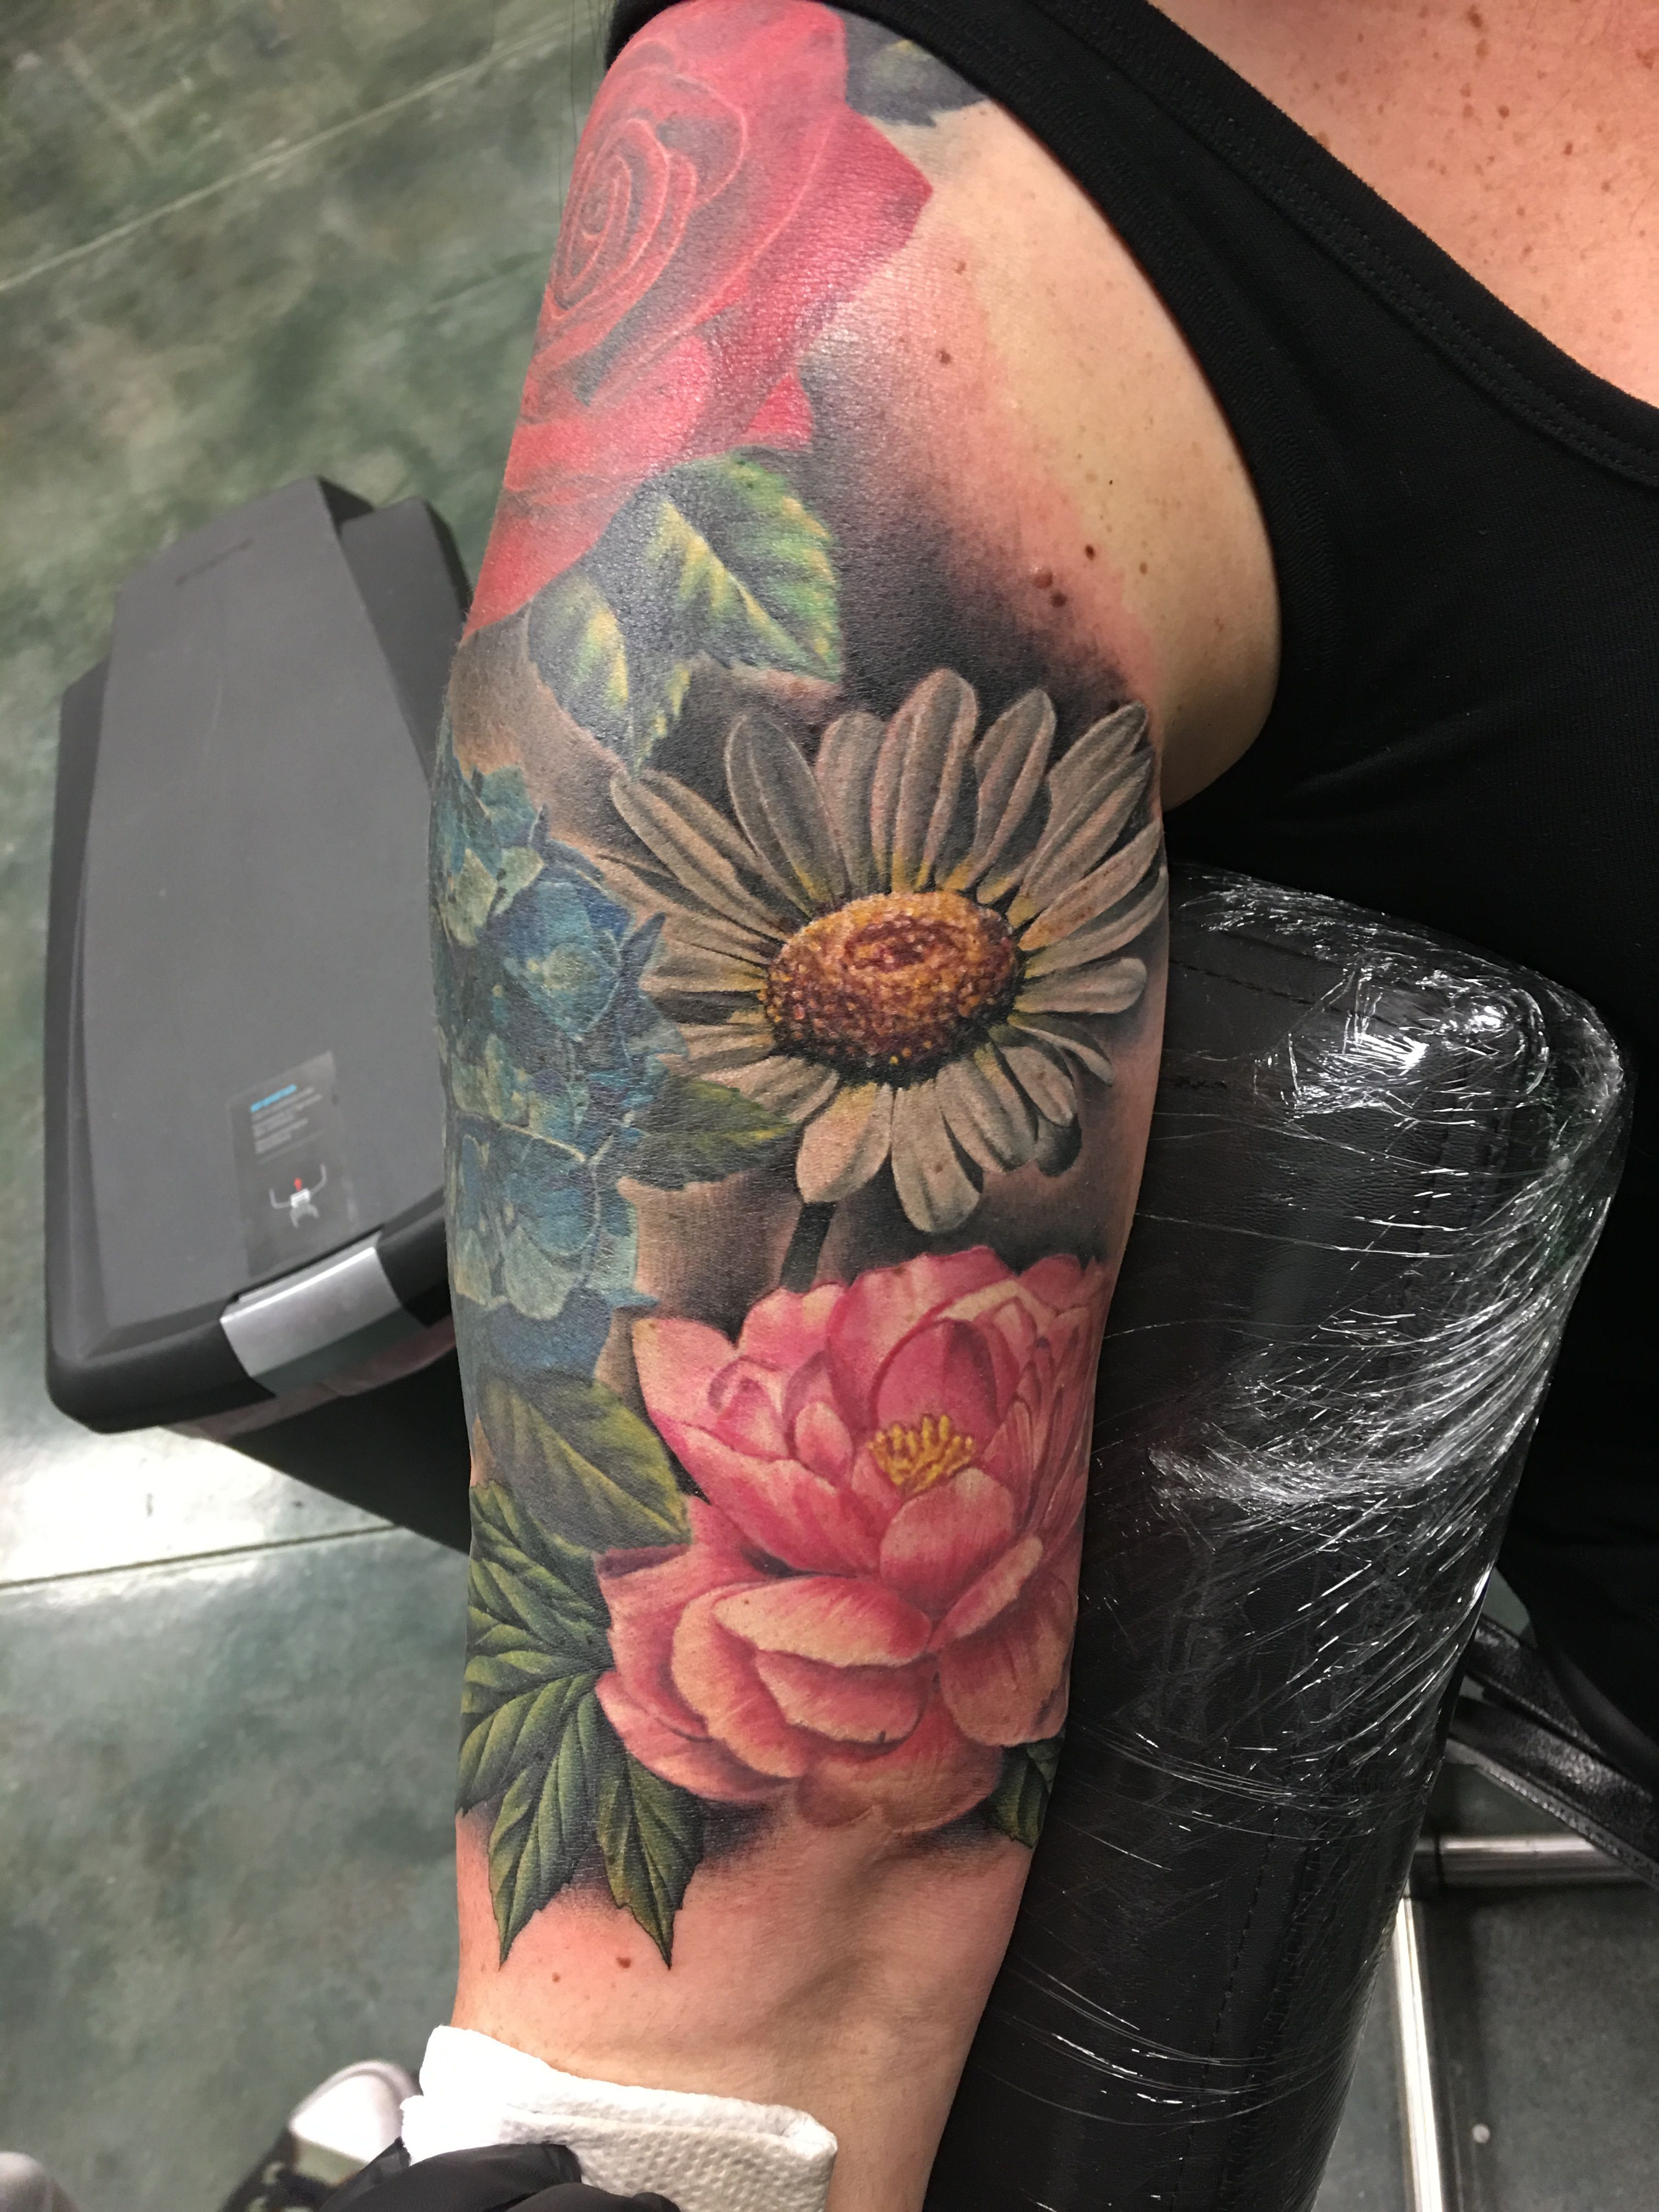 Seth holmes tattoo daisy peony hydrangea rose floral sleeve daisy tattoos daisy flower tattoo designs for girls and women daisy flower tattoos with meanings daisy flower tattoo ideas for women with meaning izmirmasajfo Image collections